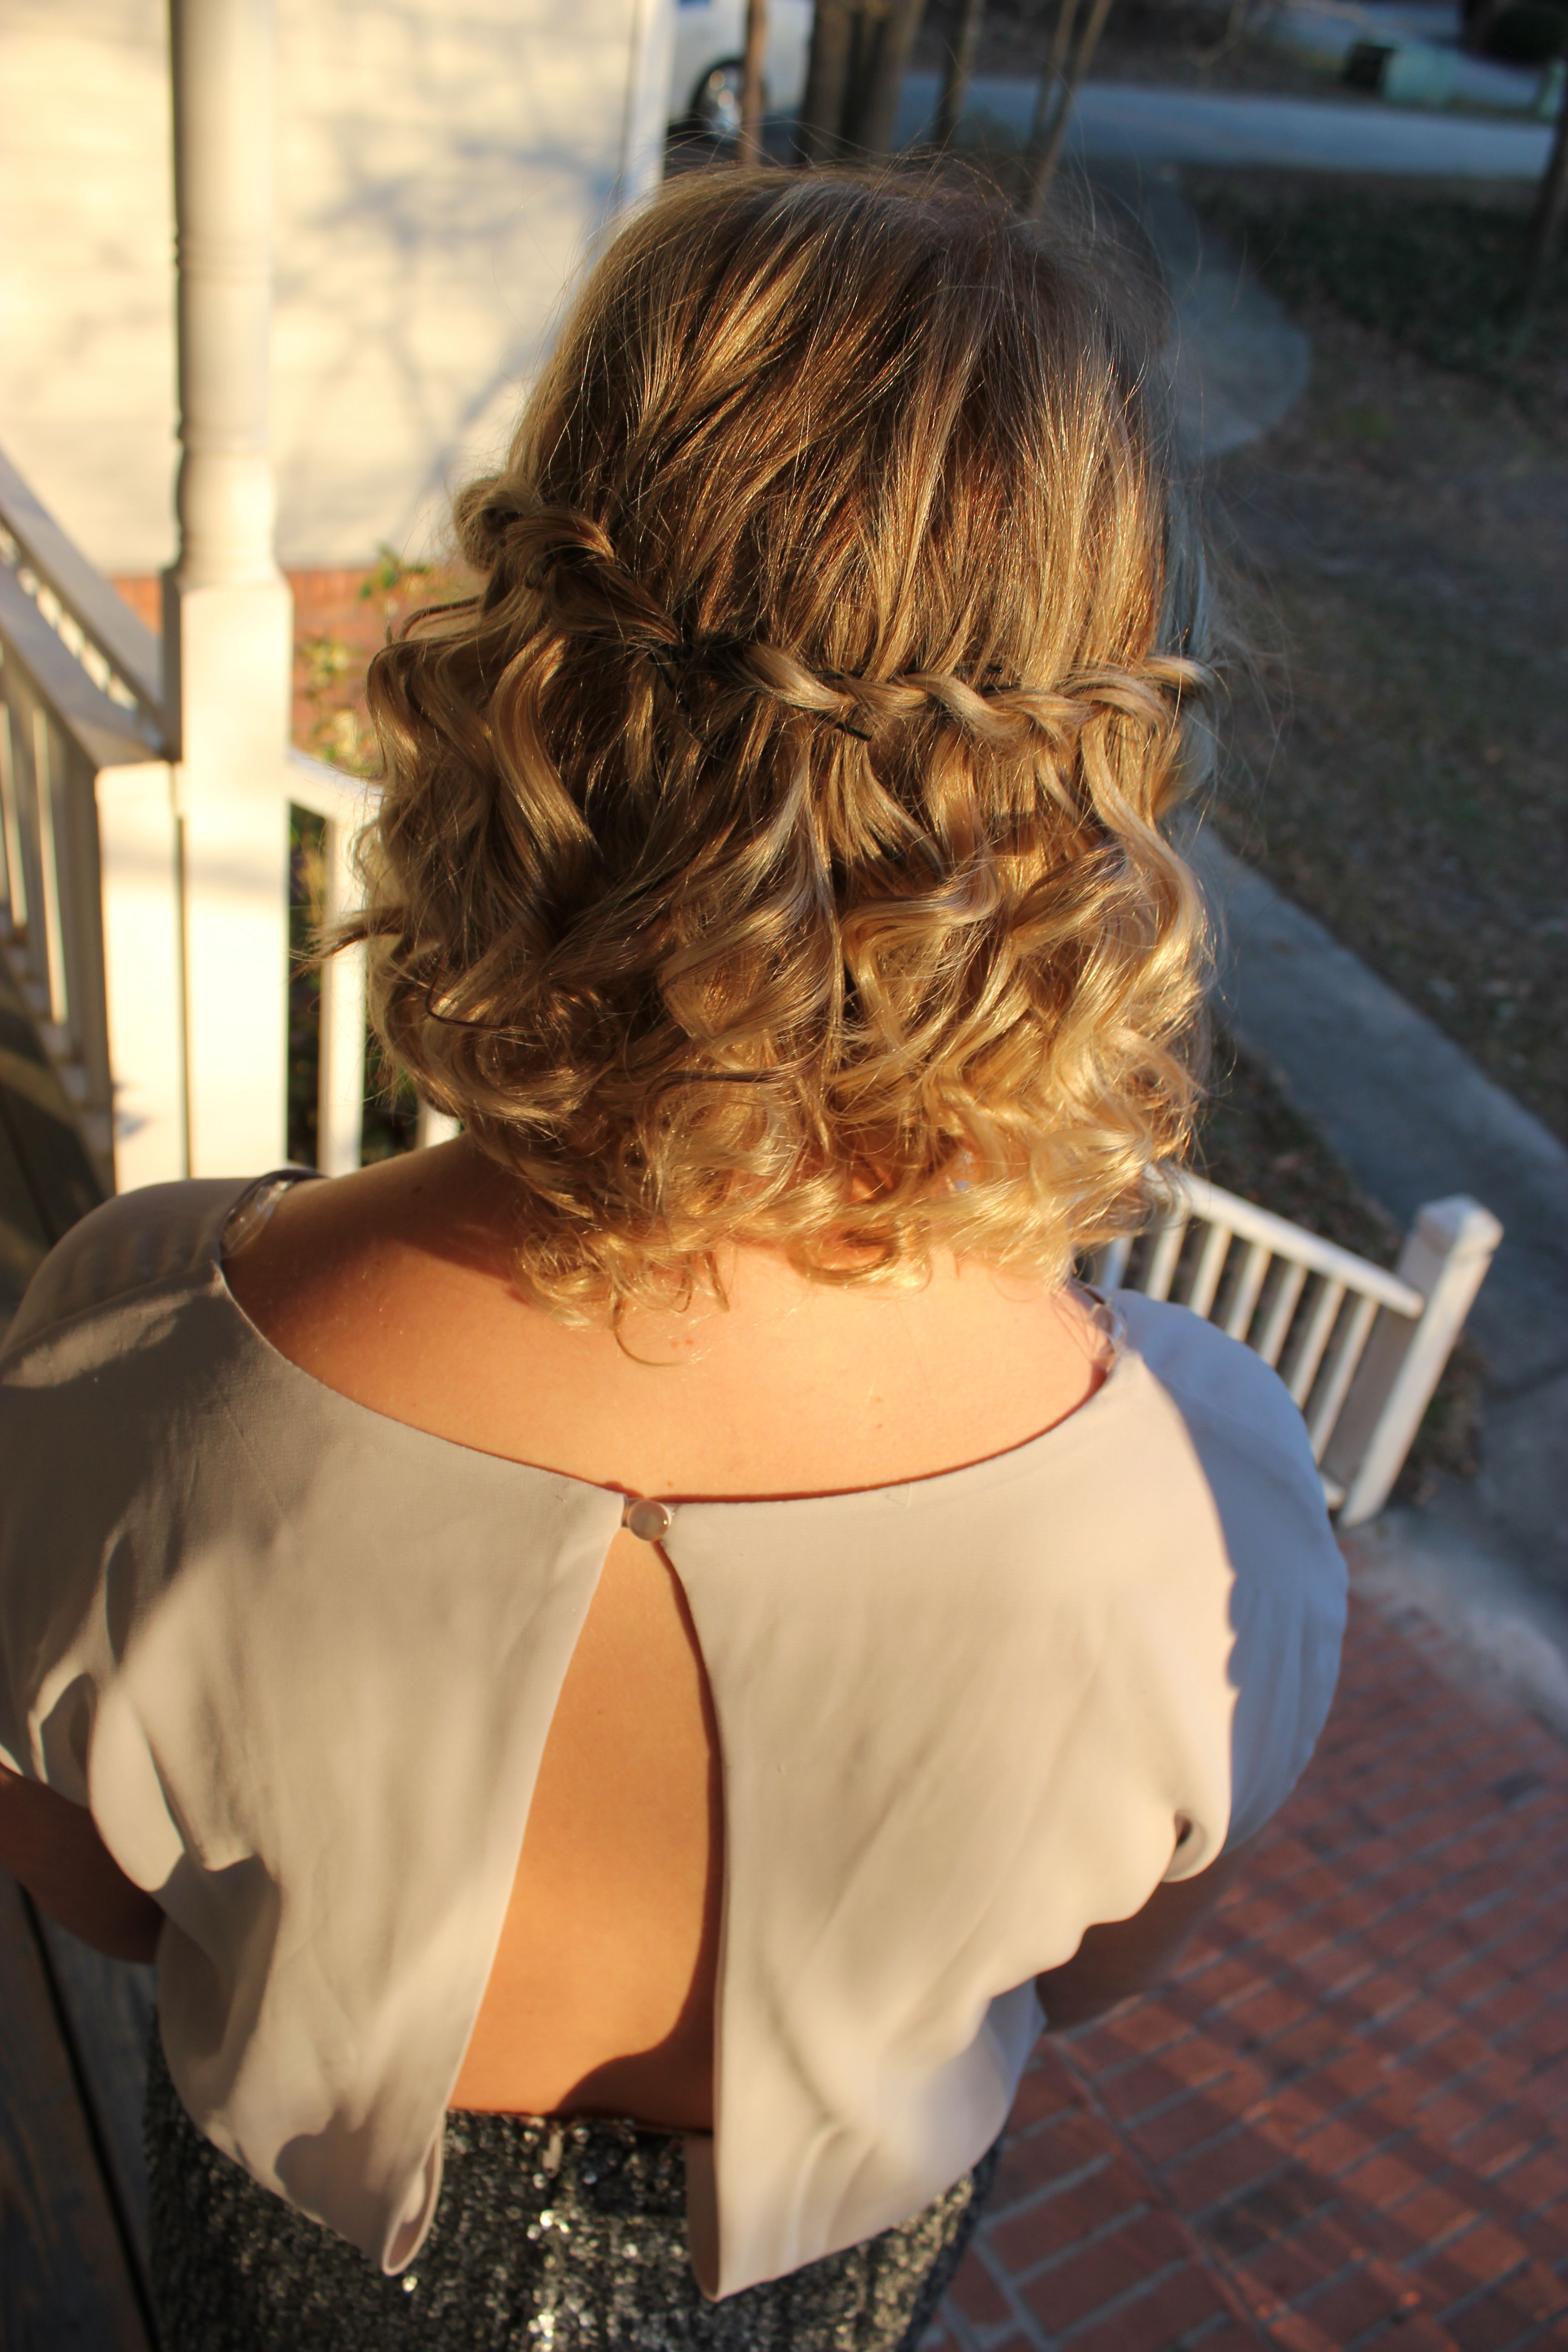 Curls and twists hair style for short hair hair hairstyles